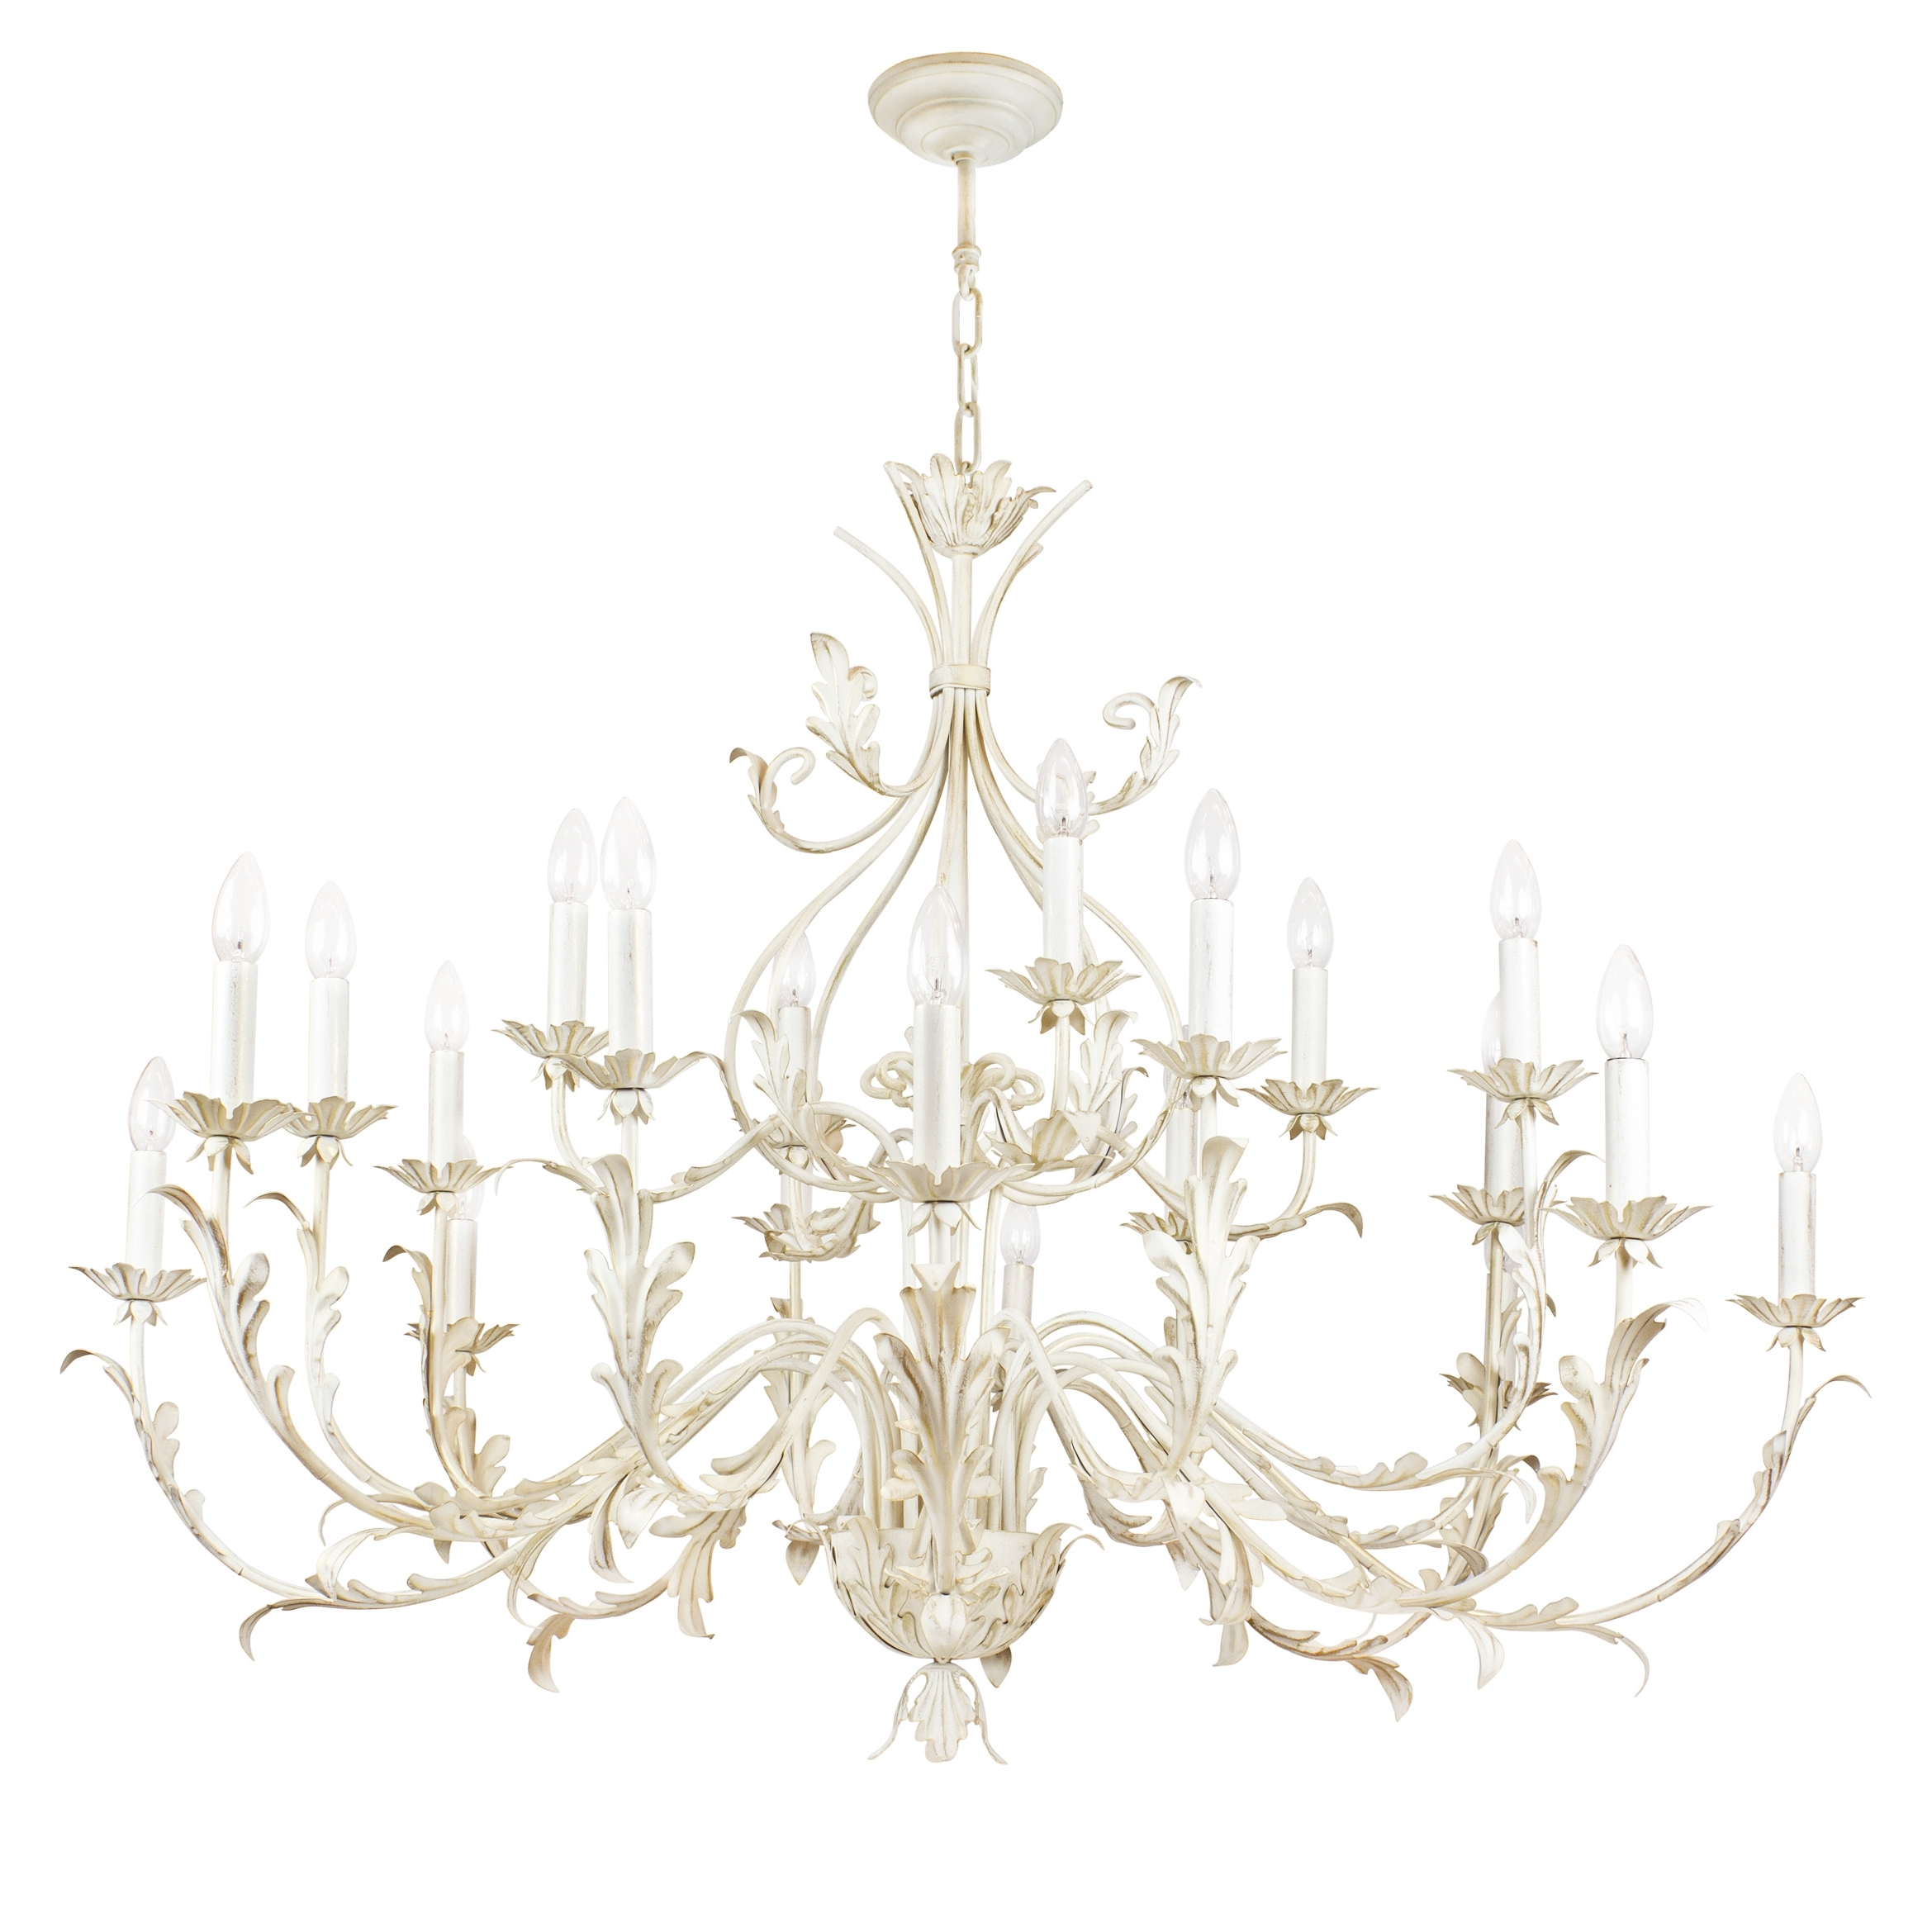 Hamilton – Villaverde London Throughout Most Up To Date Cream Gold Chandelier (View 10 of 15)